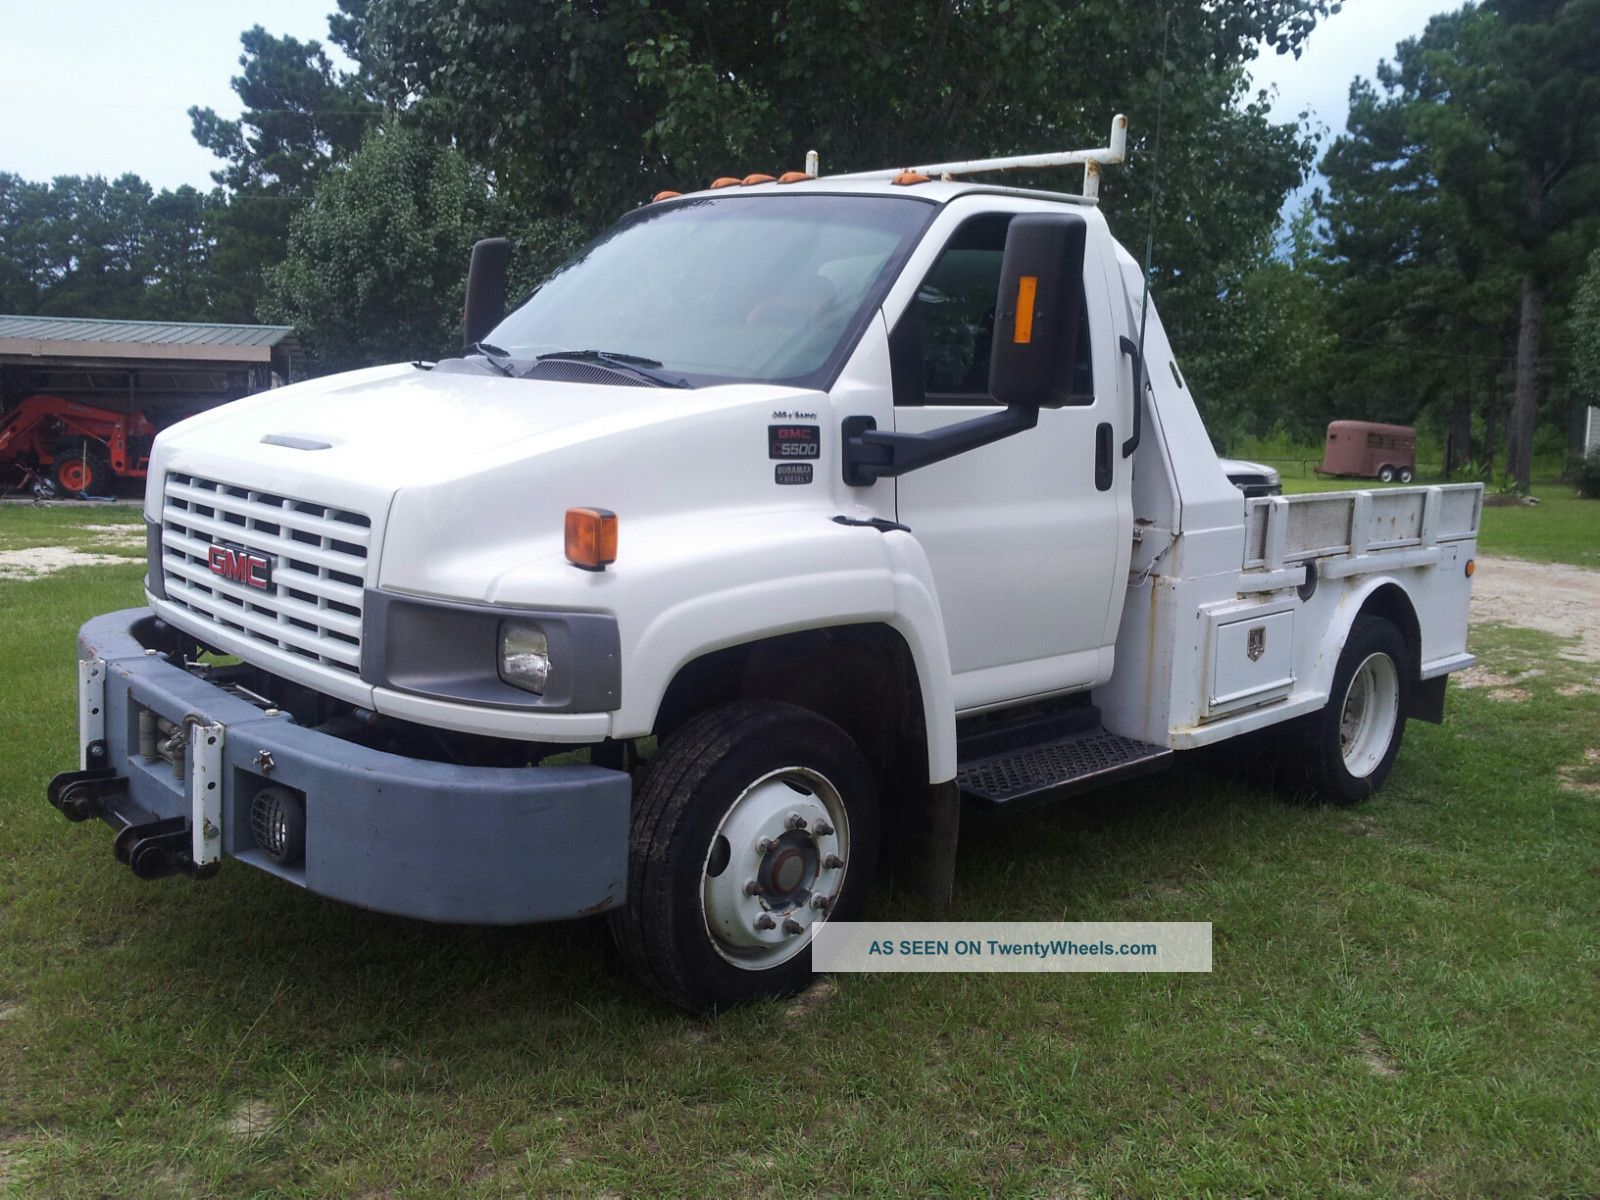 2004 Gmc C6500 Owners Manual 77621